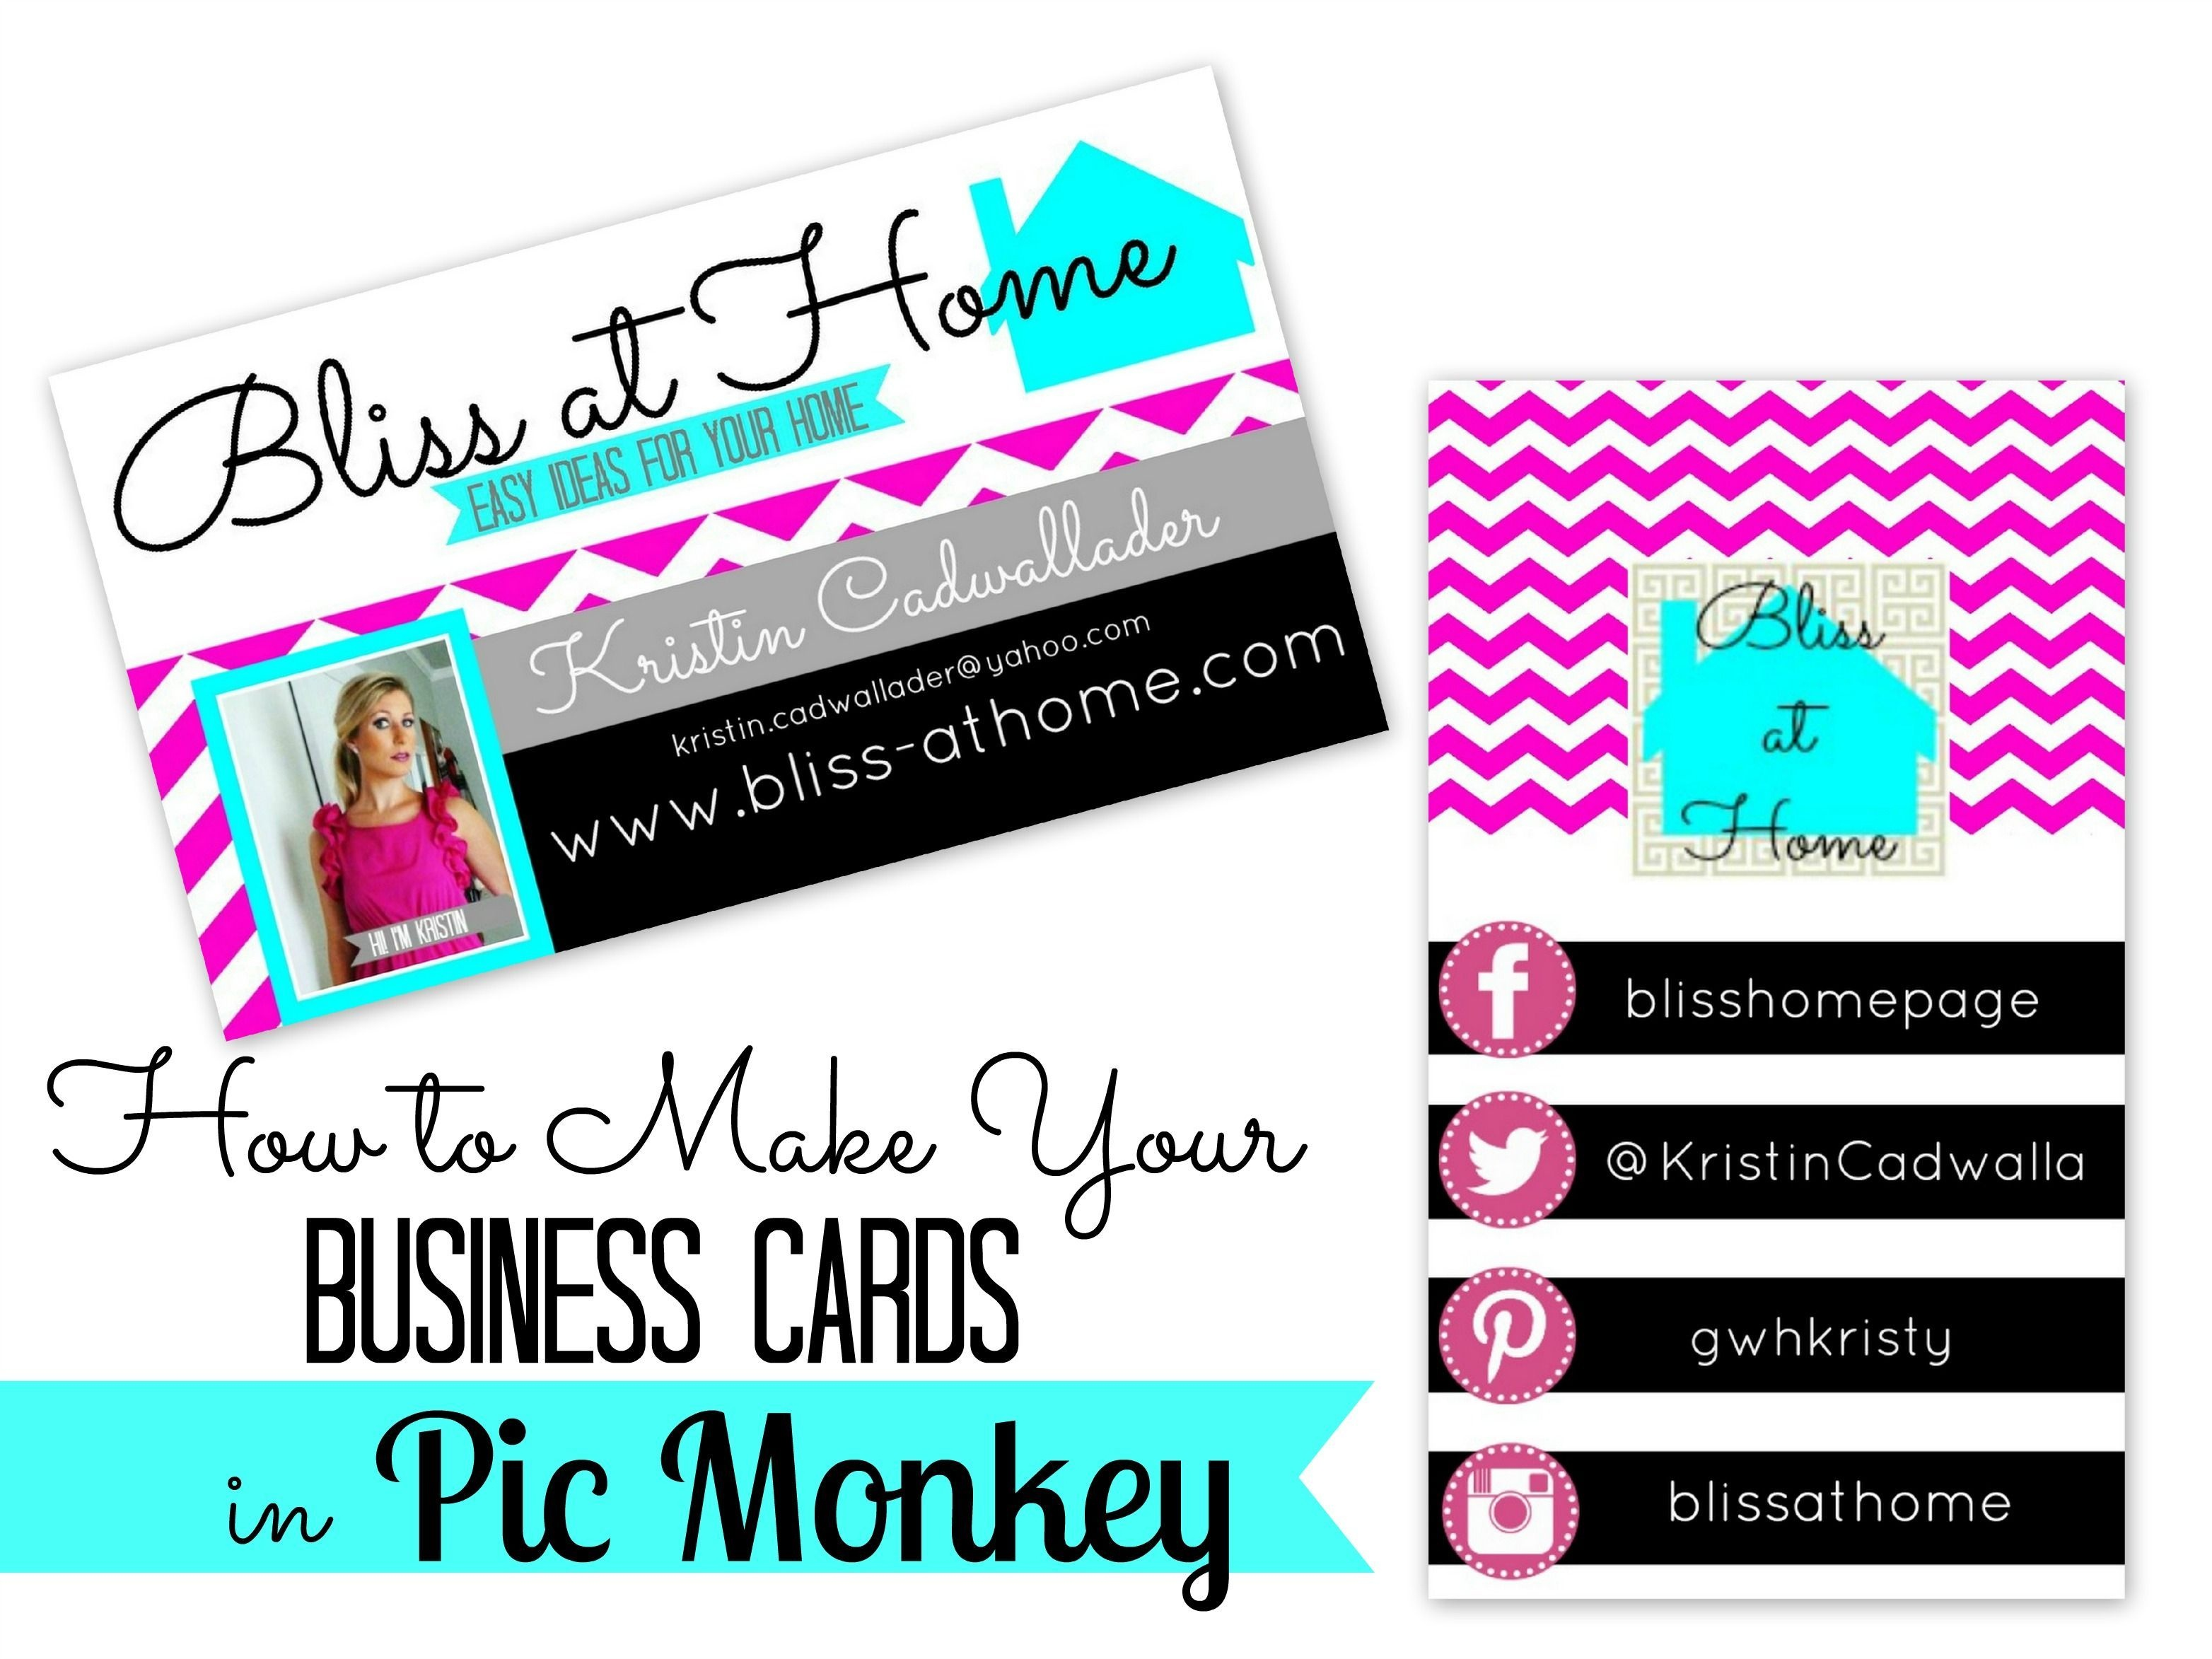 Design Your Make Your Own Business Cards Printable Online | Business - Make Your Own Business Cards Free Printable